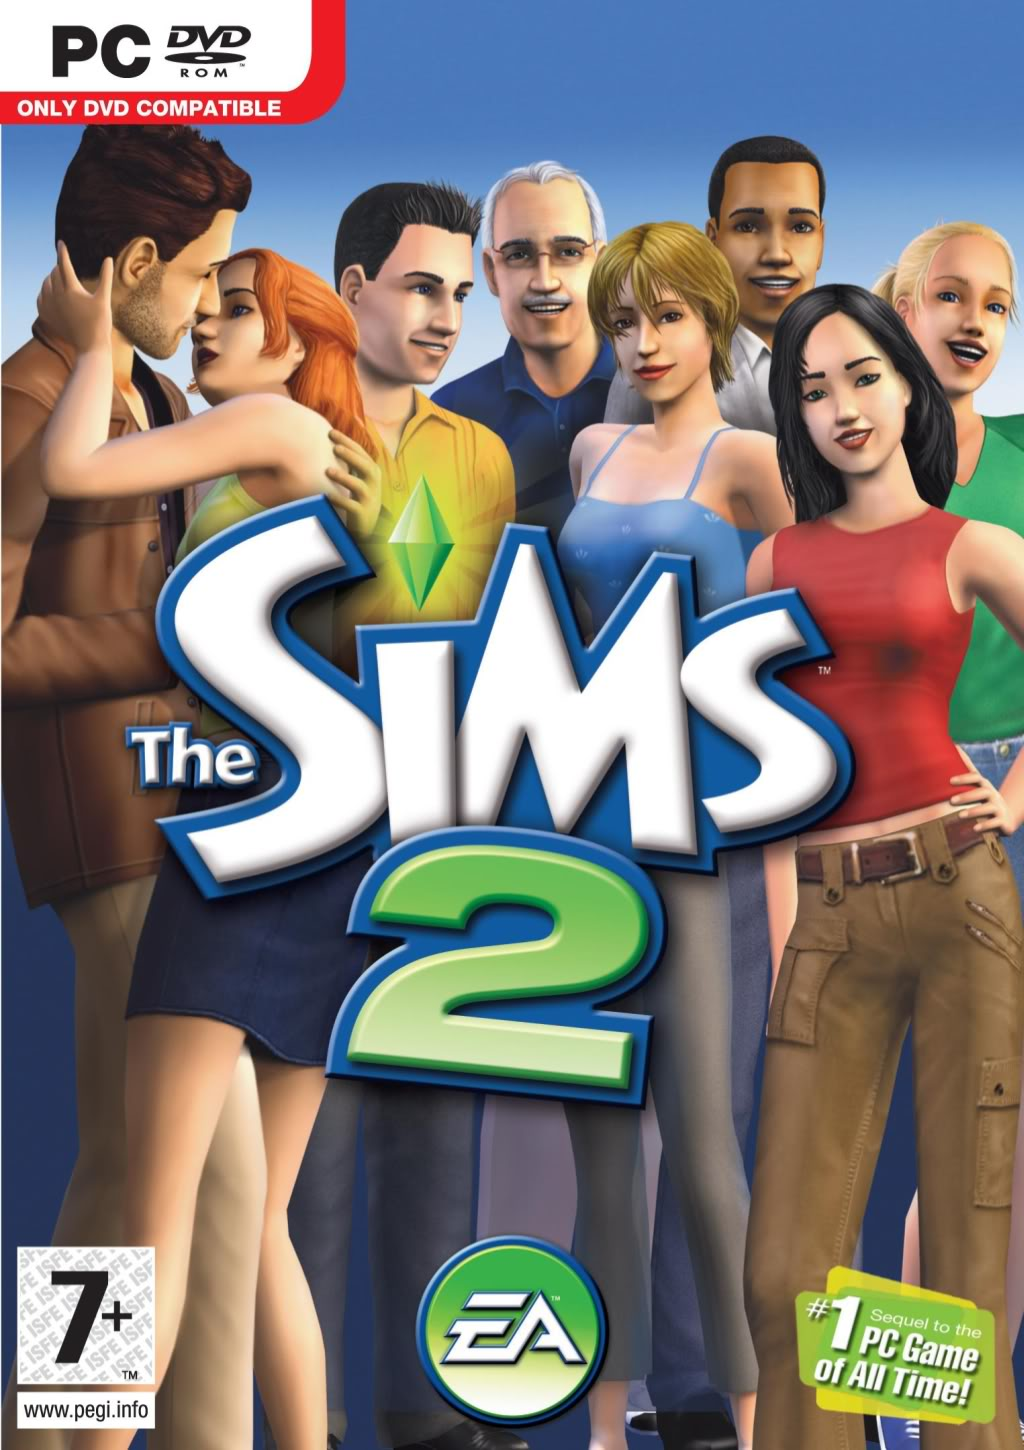 Sims 2 complete game download.